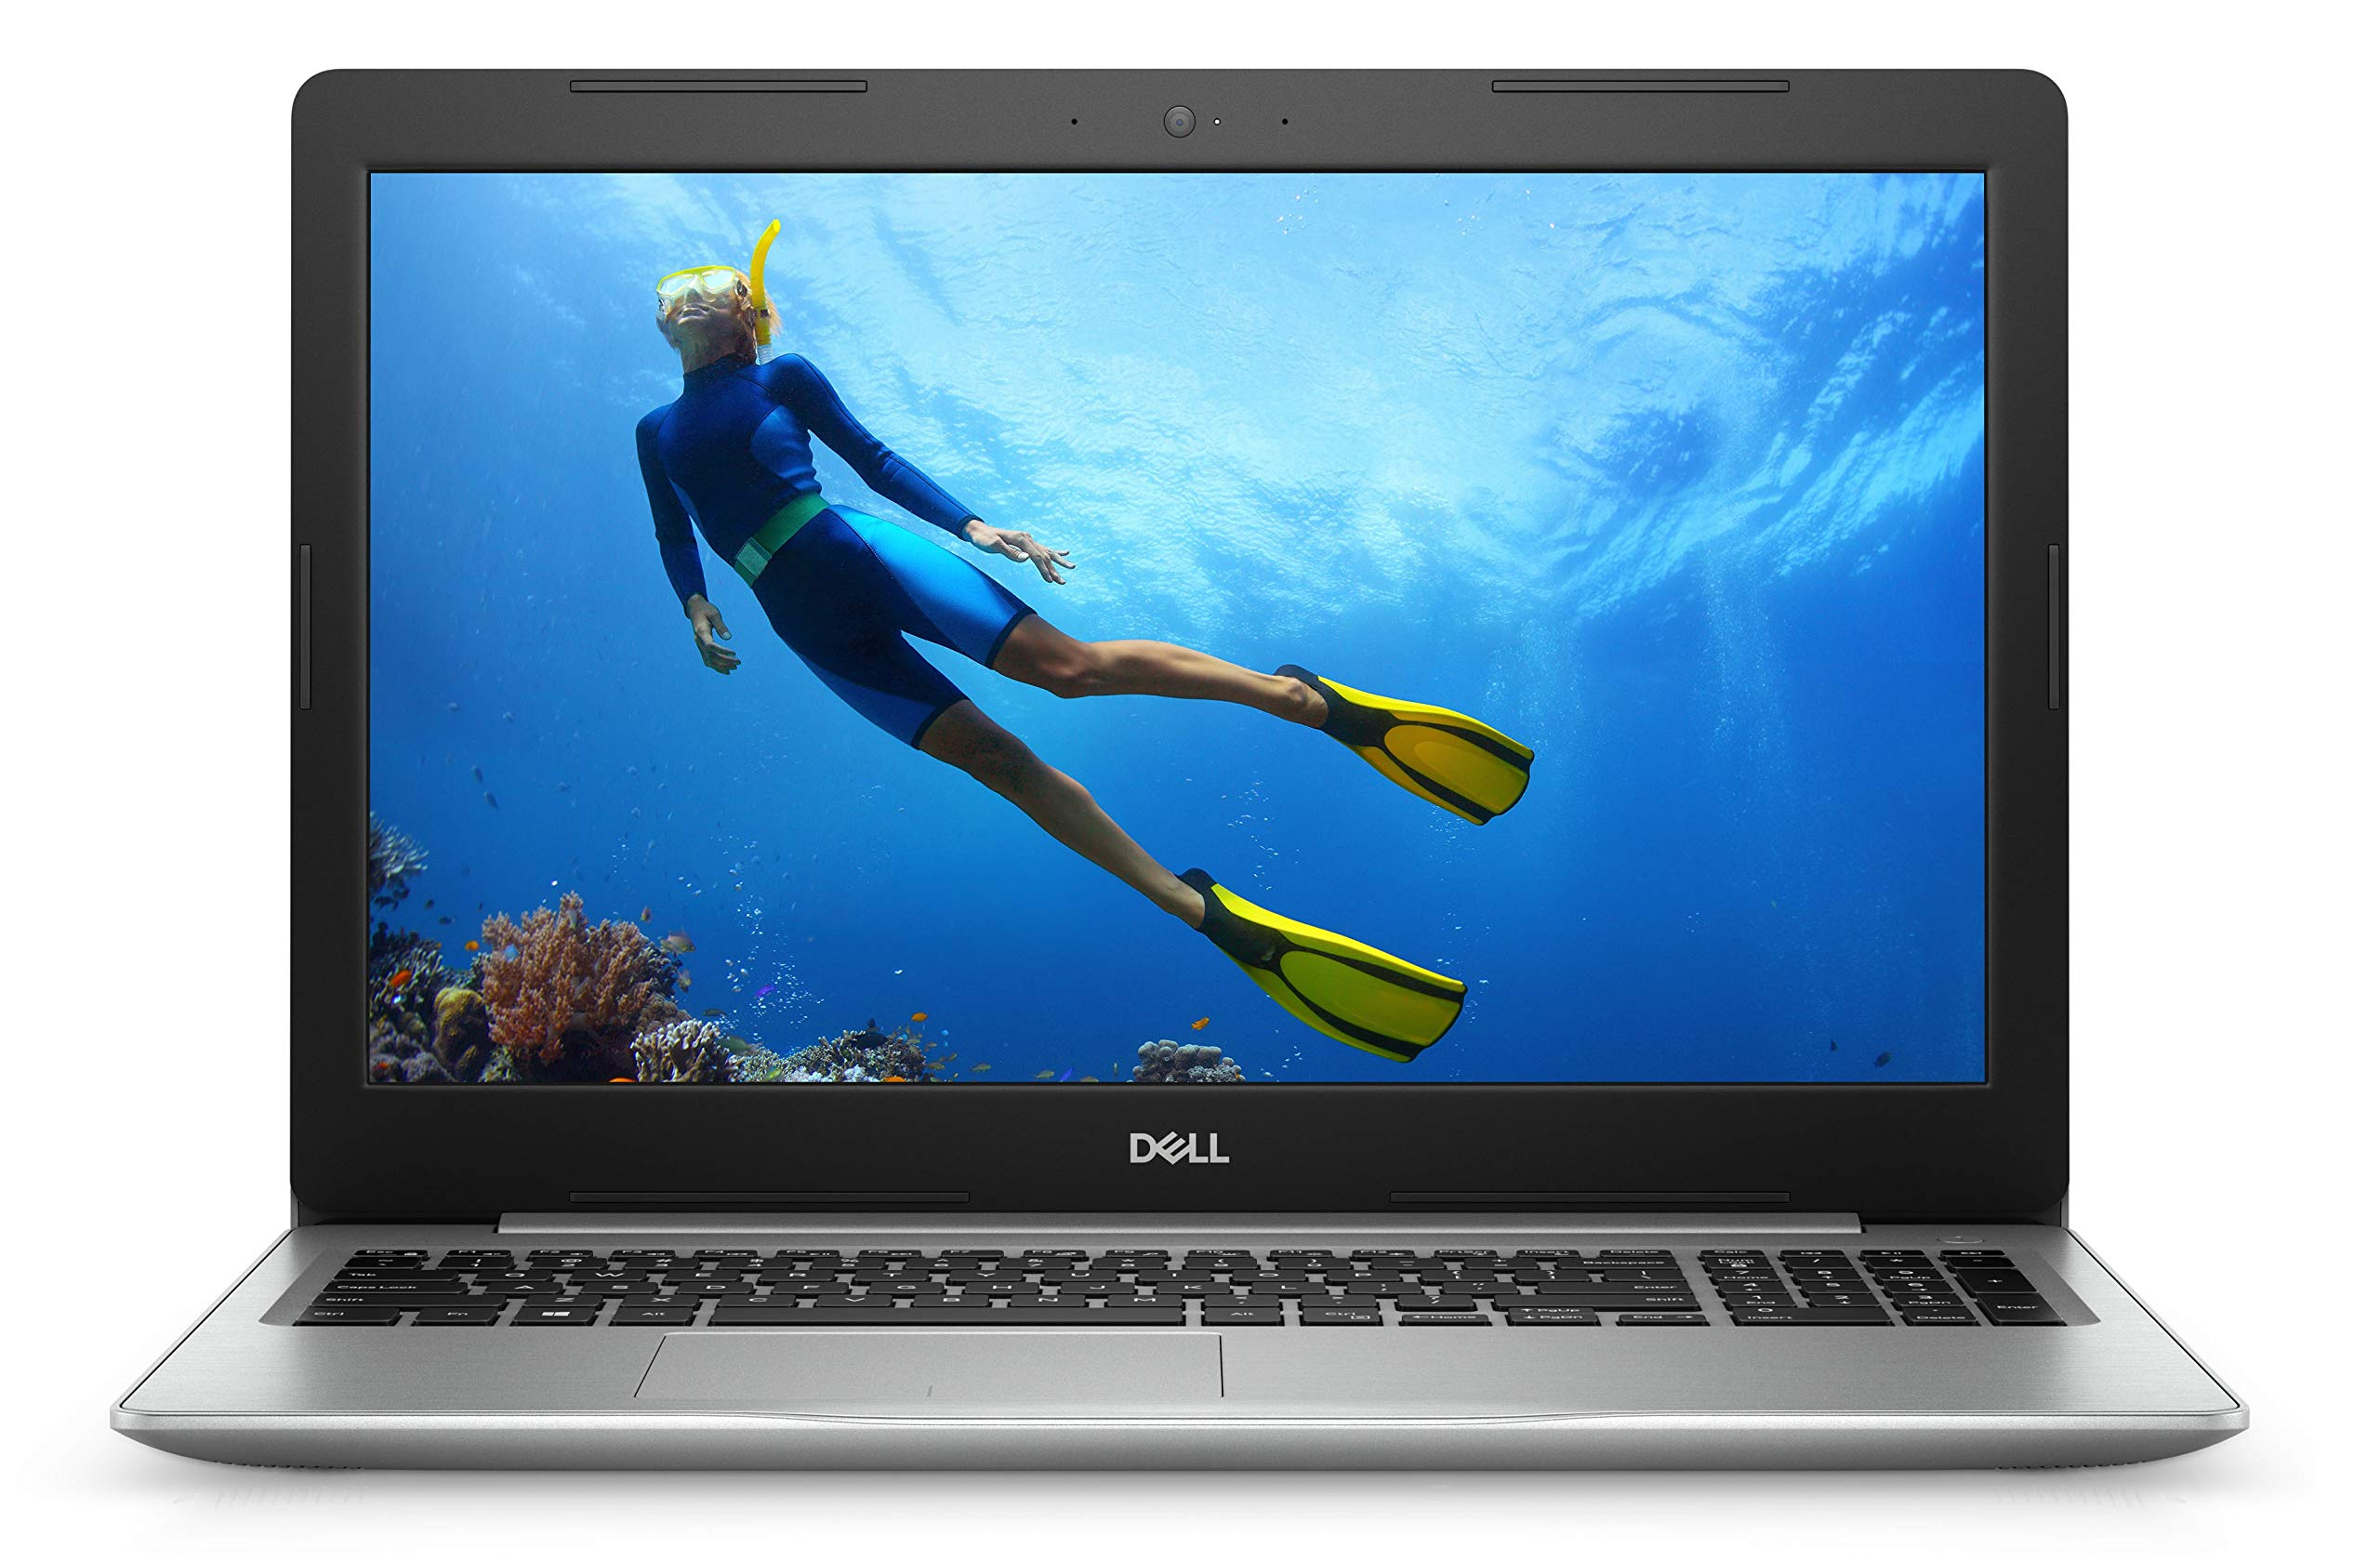 Dell Inspiron 15 5000 15 6 Inch Fhd Thin And Light Laptop Platinum Silver Amd Ryzen 7 2700u 8 Gb Ram 256 Gb Ssd Amd Radeon 530 4 Gb Windows 10 Home Amazon Co Uk Computers Accessories